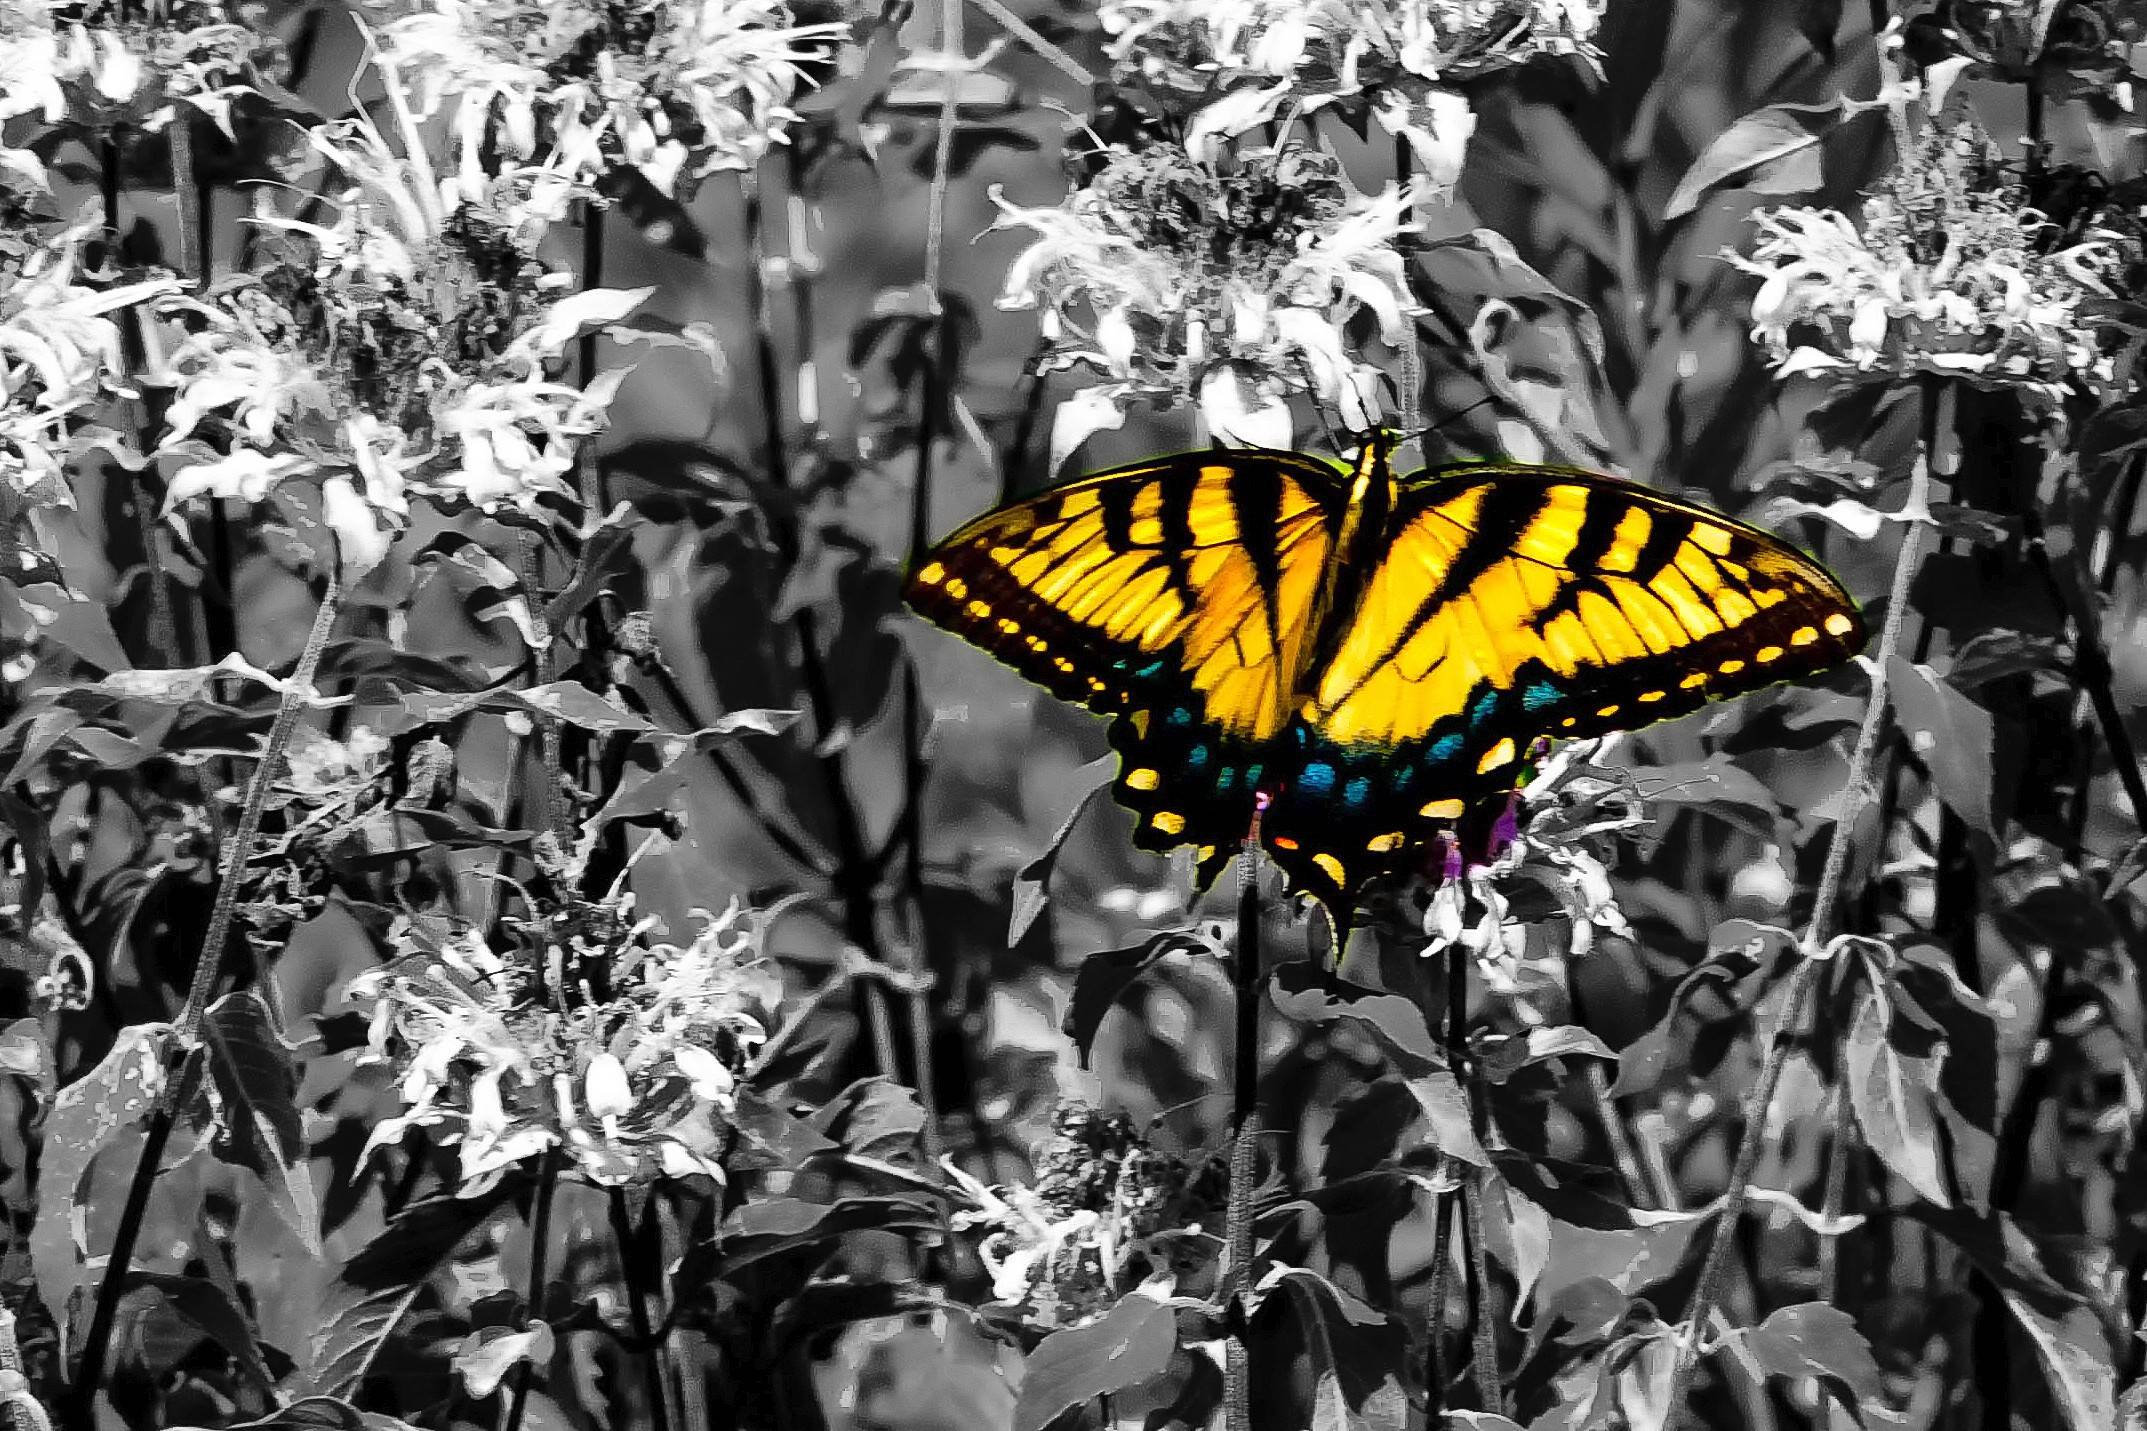 Tony Lyons of Wheaton won first place in our August Photo Finish contest for this shot of a swallowtail butterfly.